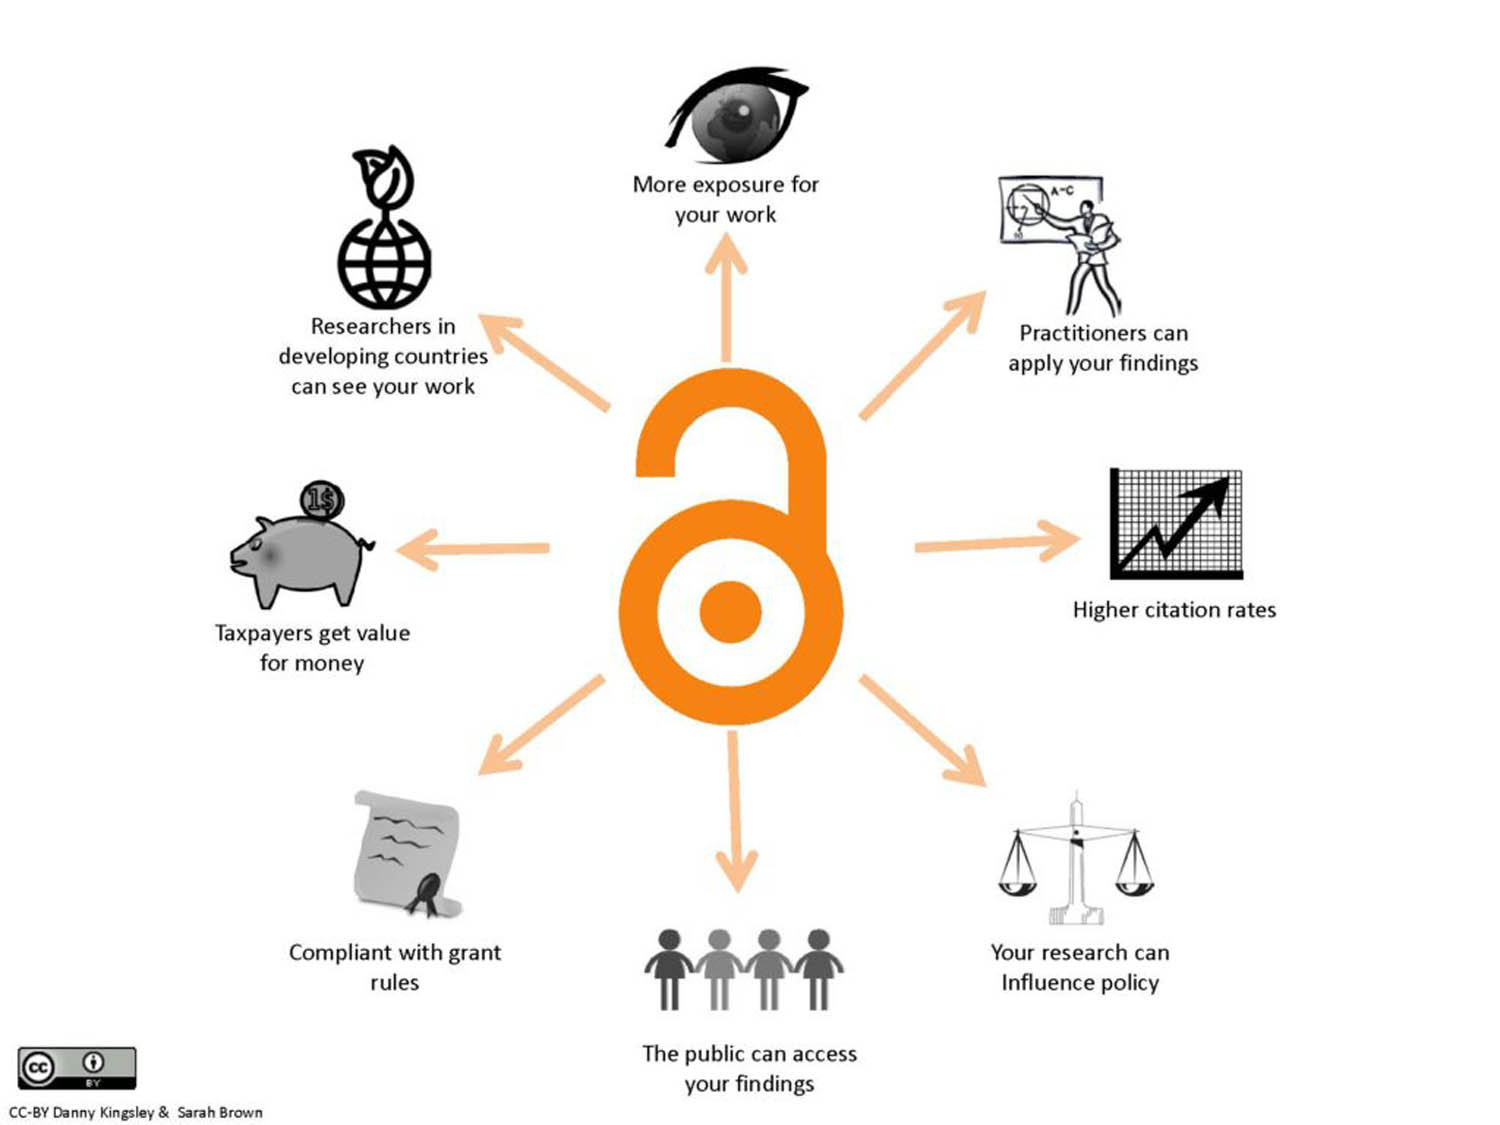 Benefits of Diamond Open Access